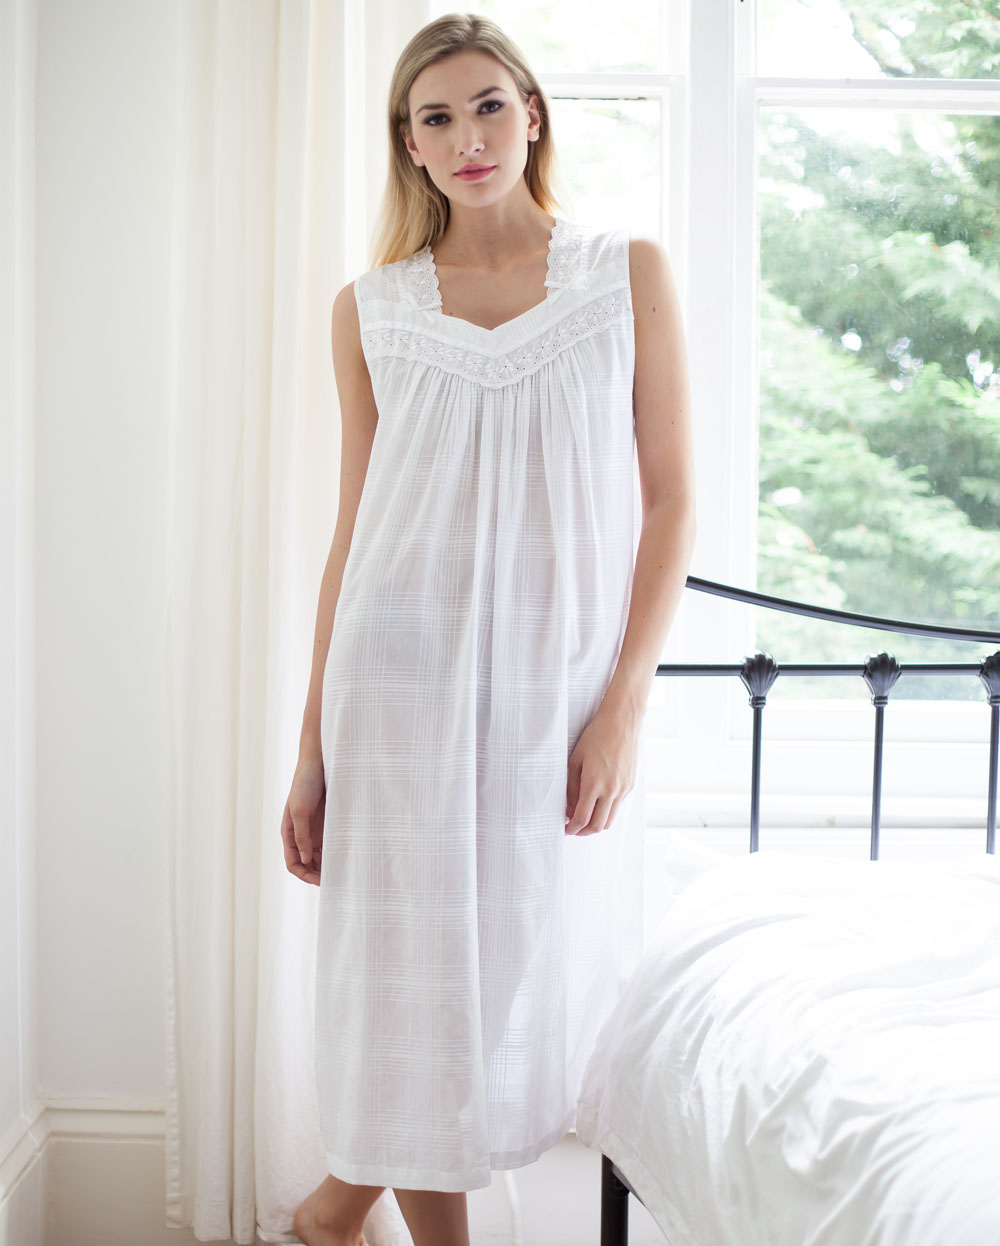 Naomi Cotton Lawn Sleevless Nightdress - Cottonreal 0bfdde90f